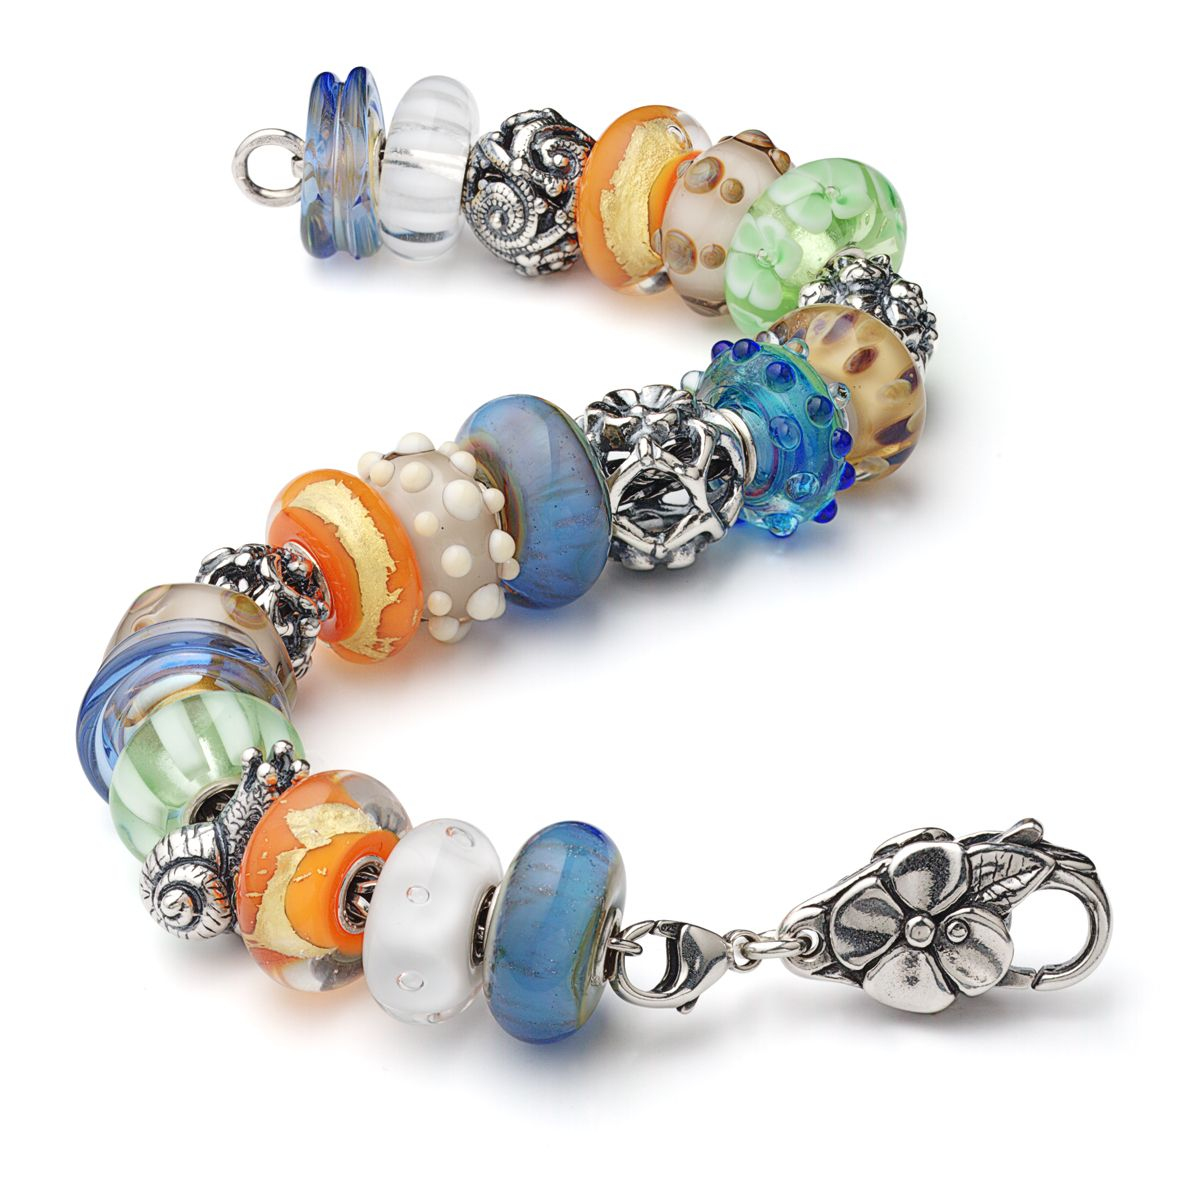 norwich shop treasures dreams in aurum jewellery bracelet delicate trollbead earthly